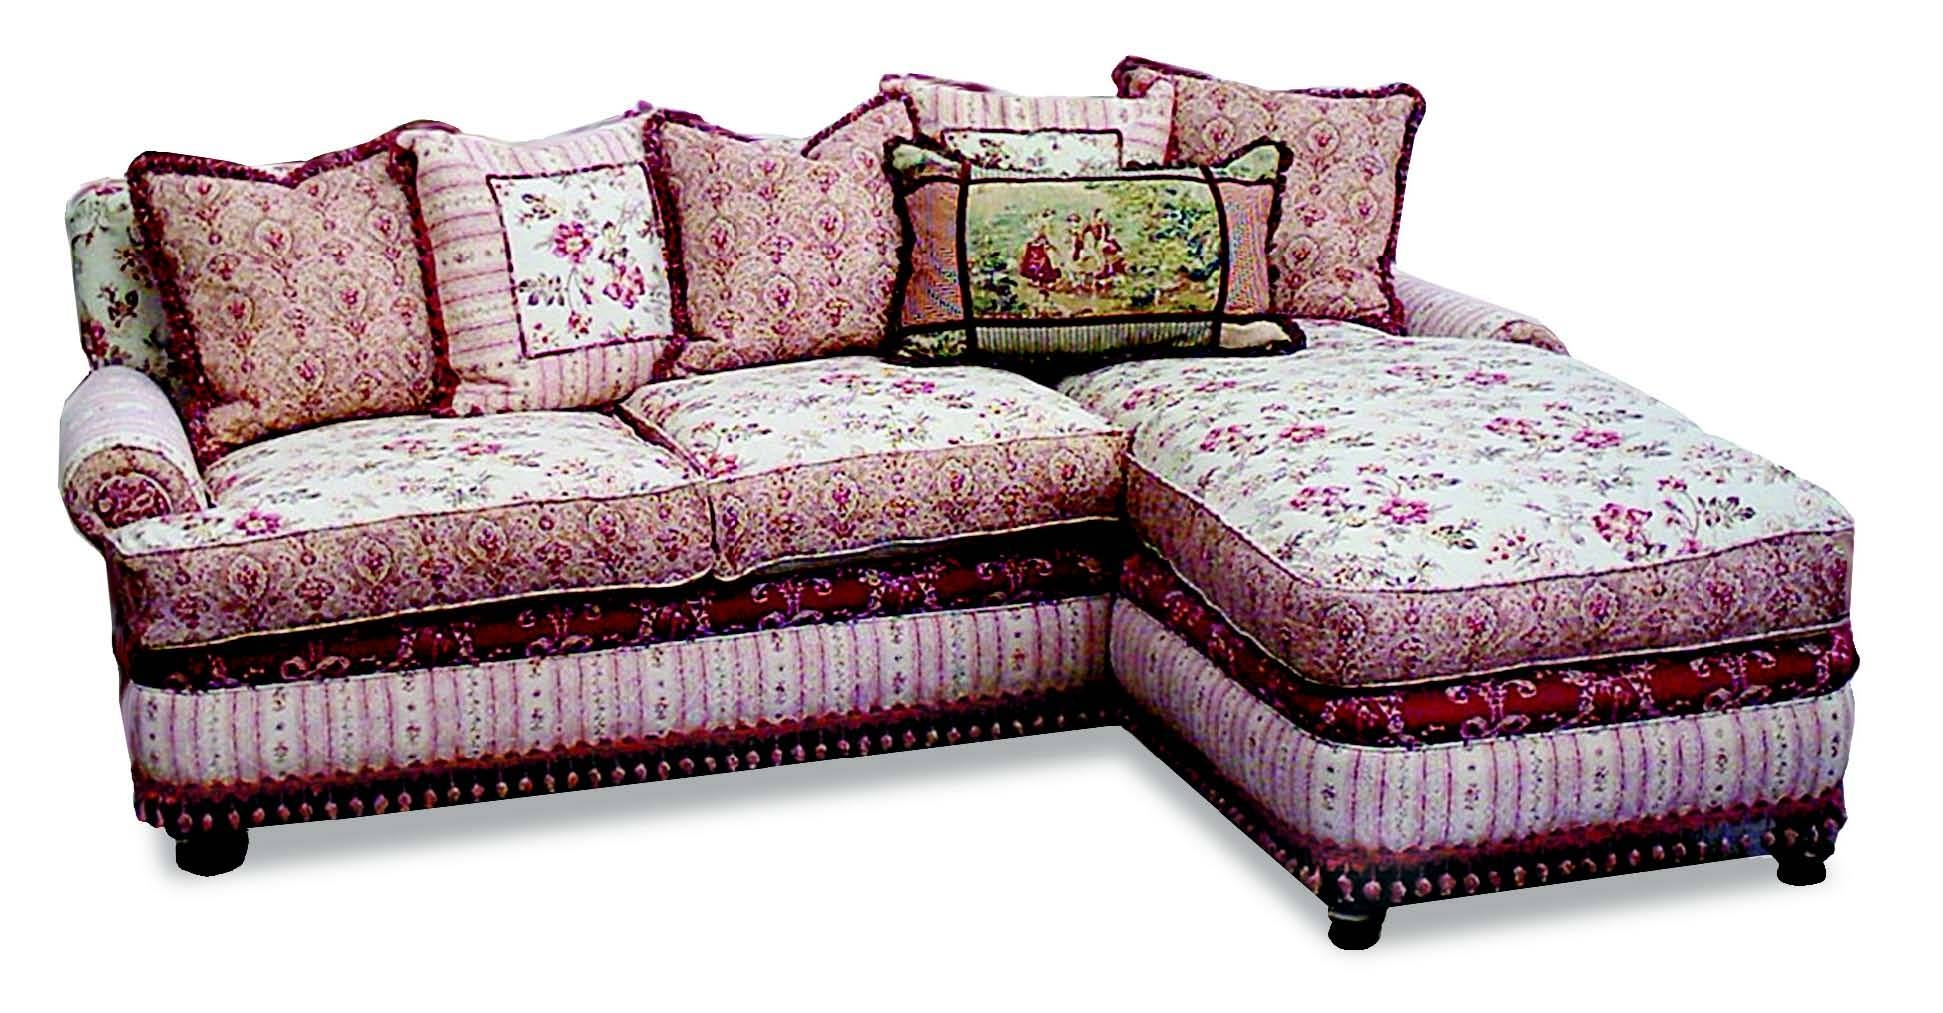 30 Inspirations of Shabby Chic Sofa